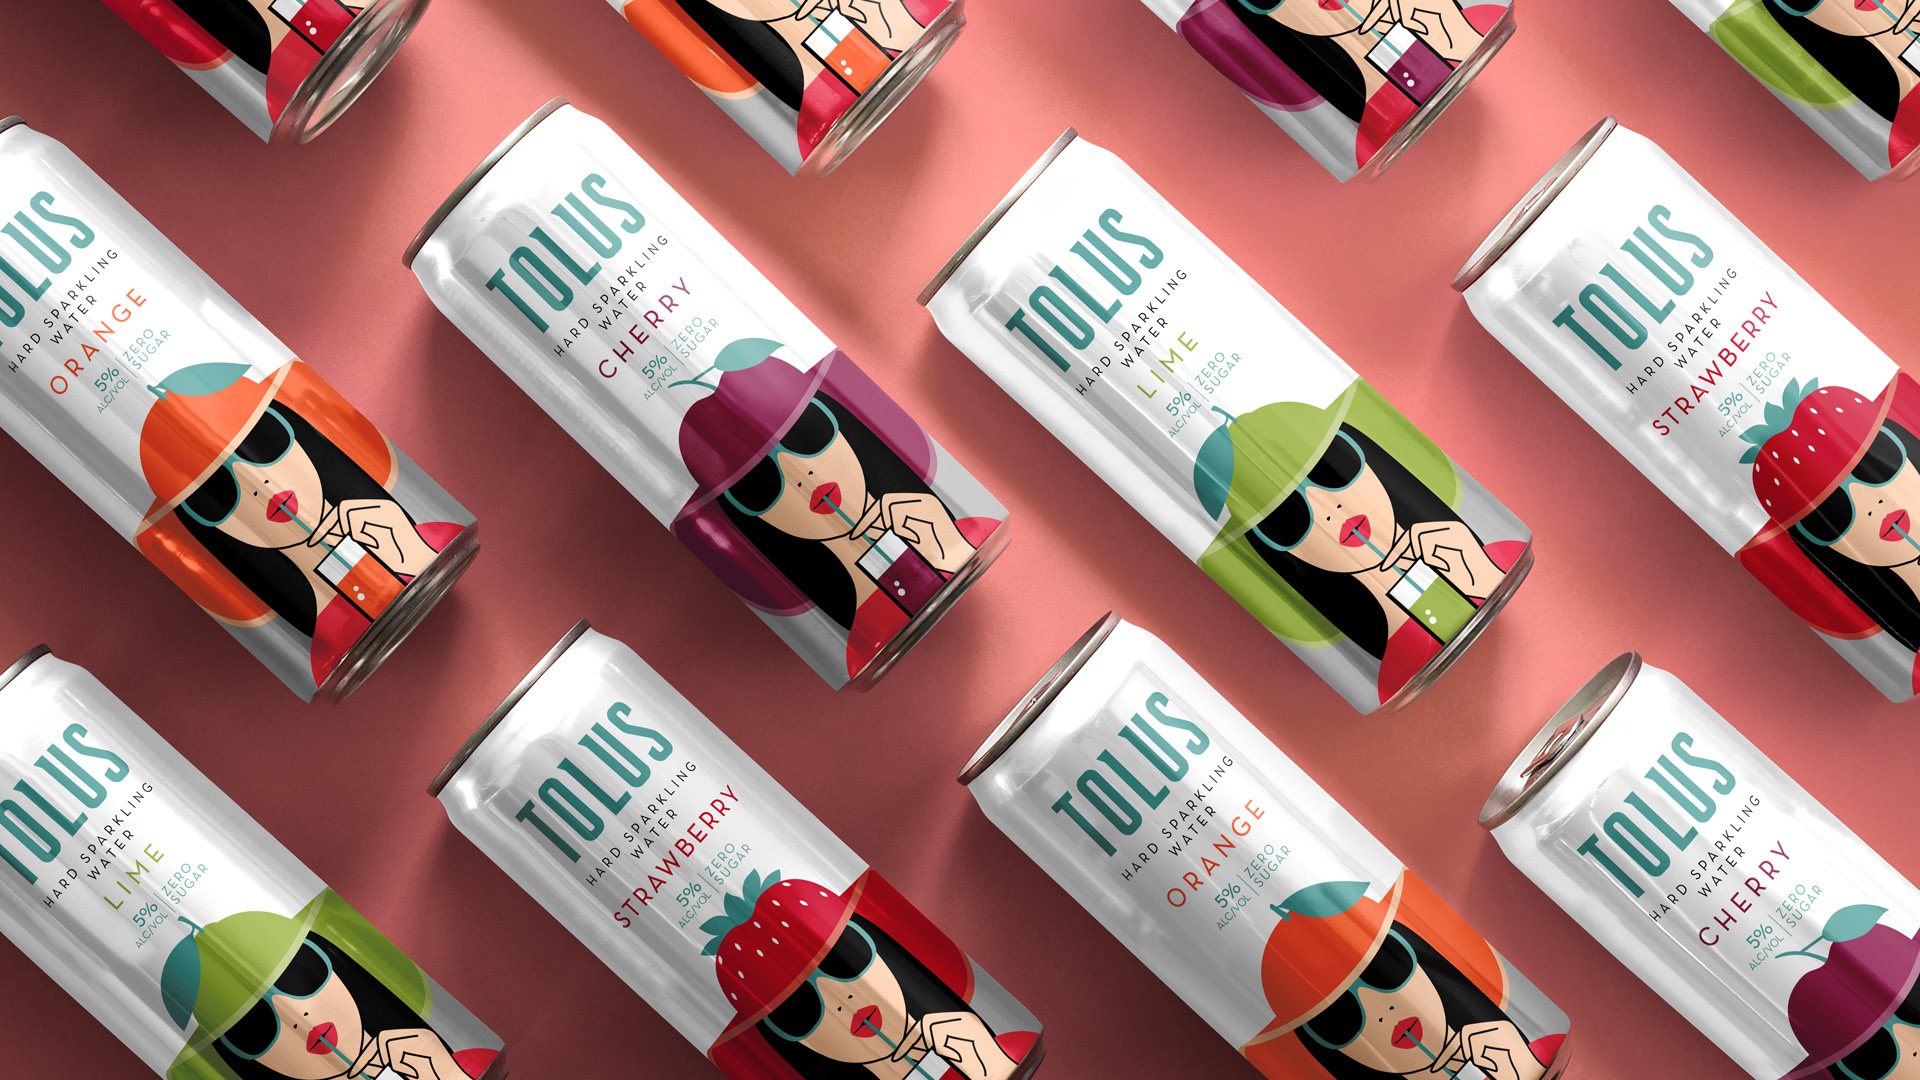 Nitid Studio Breaks the Category Codes with Tolus Hard Sparking Waters Range